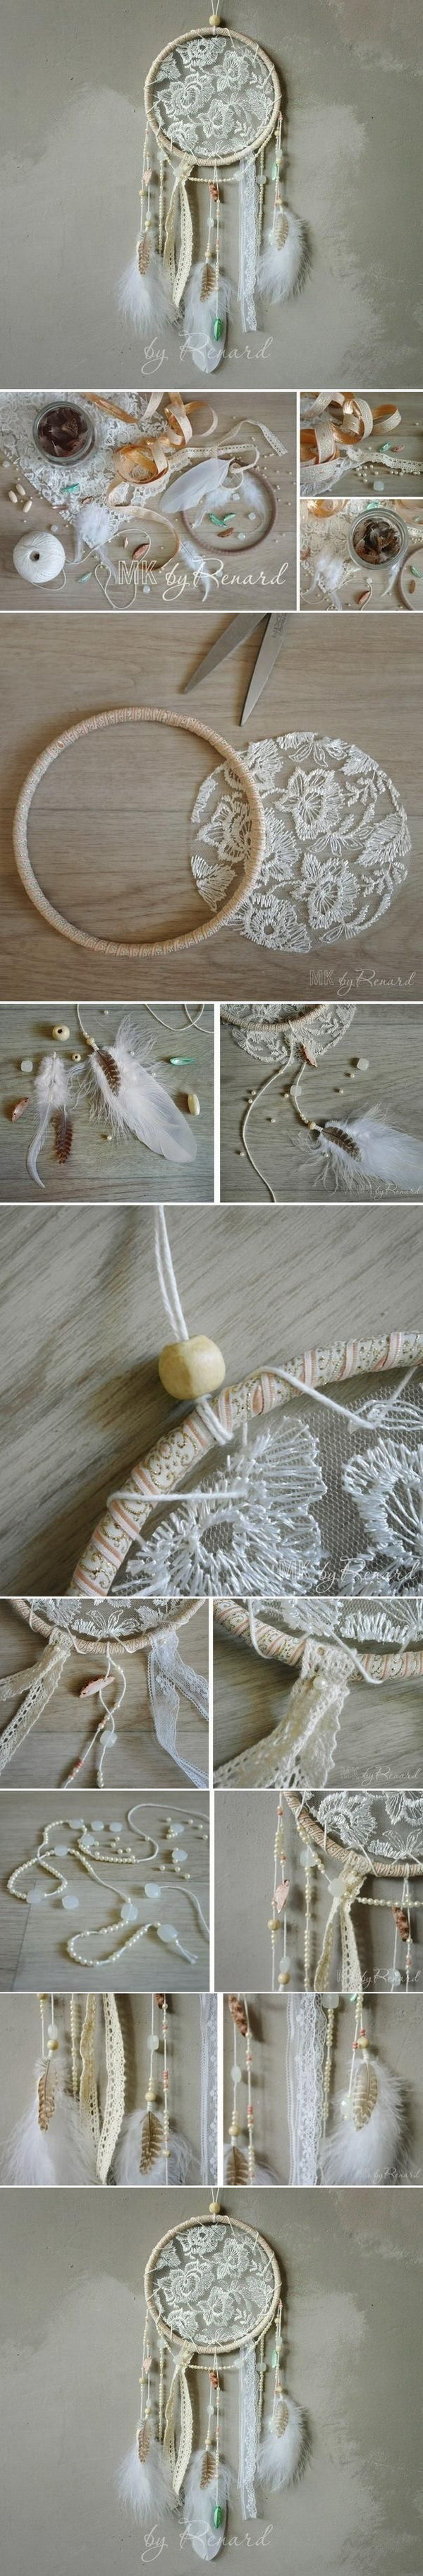 White lace dream catcher. It is super easy to put a piece of lace in your dreamcatcher if you are not good at crocheting. With just a few easily available scraps and beads, and this DIY piece can be make in no time!